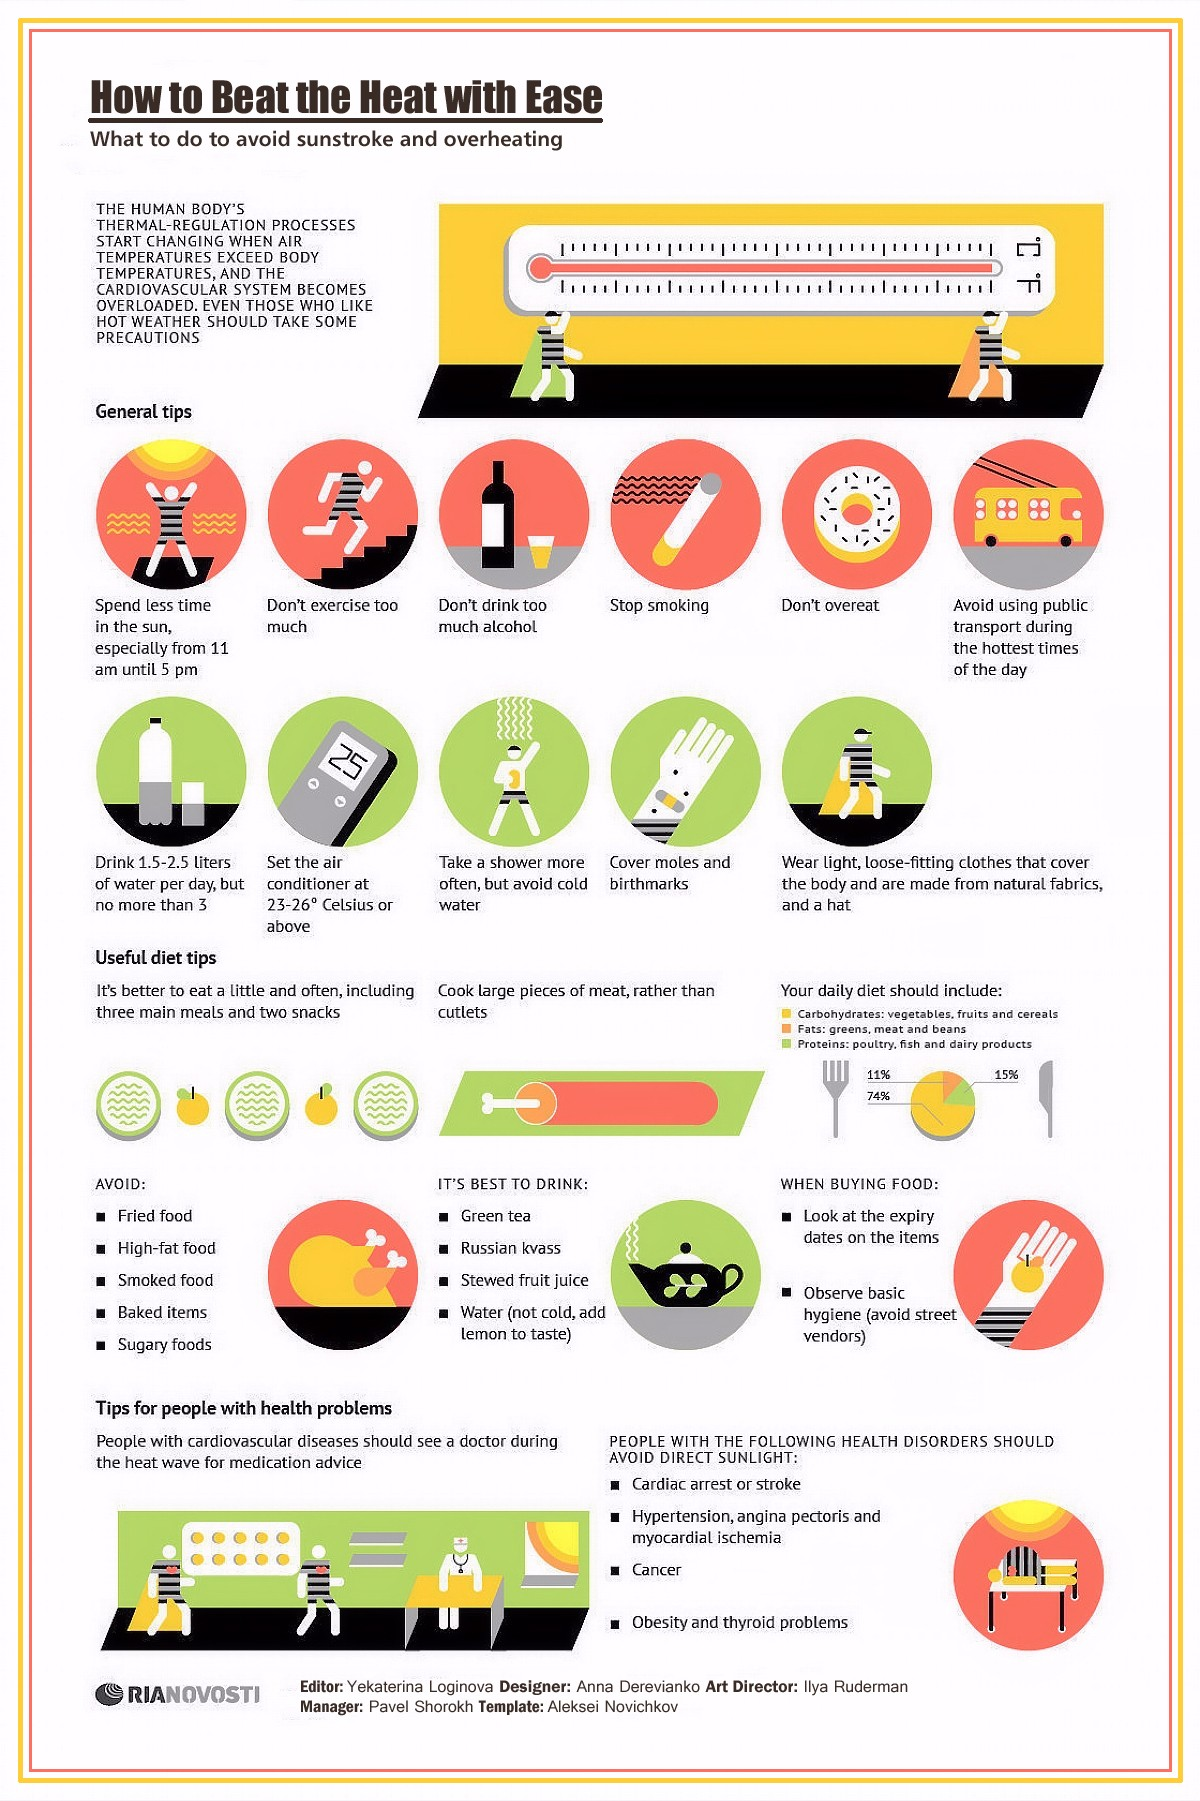 00 RIA-Novosti Infographics. How to Beat the Heat with Ease. 2013